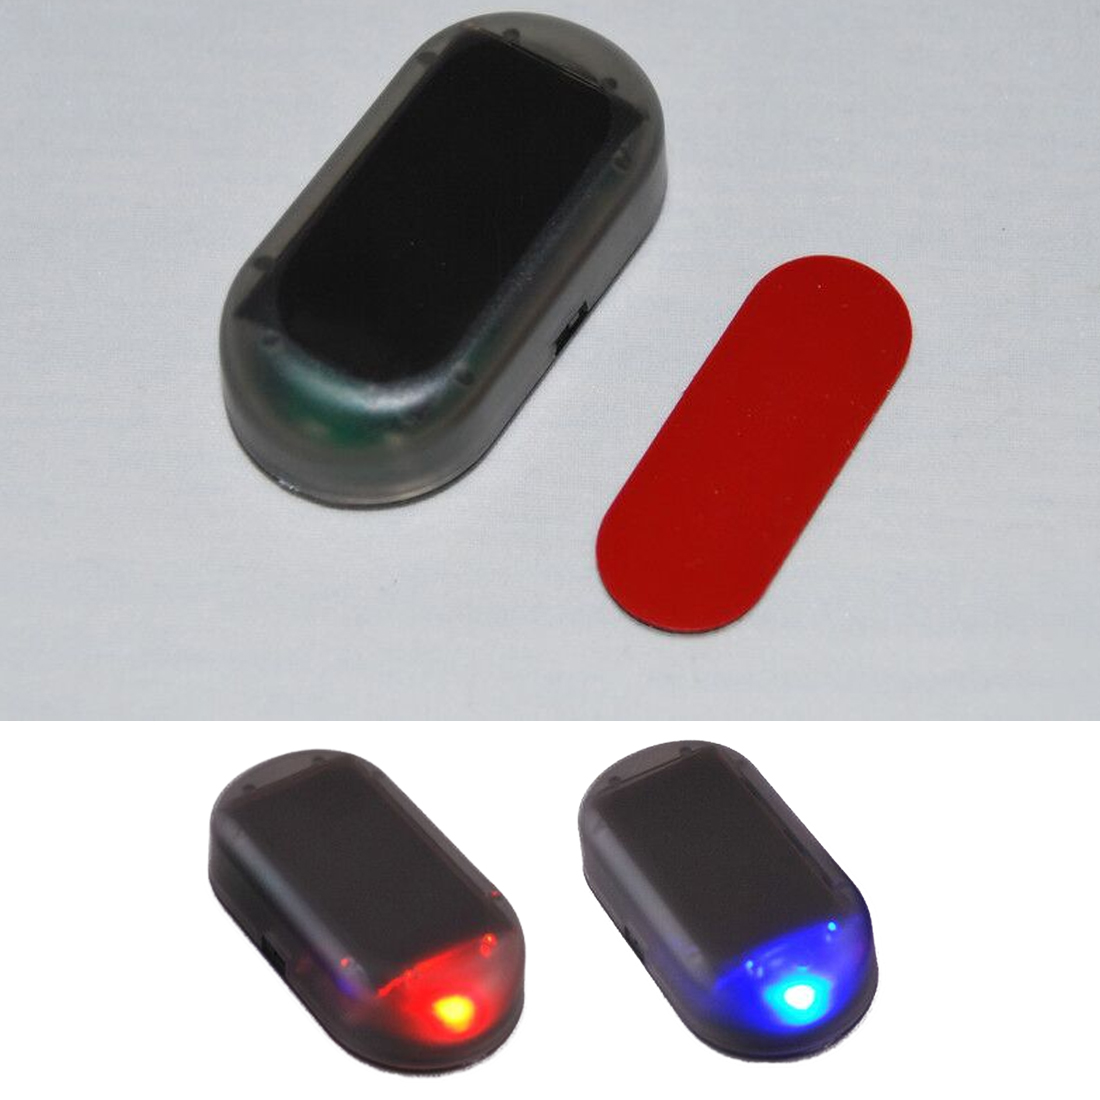 1PCS Advanced Car Simulation Alarm Led Light Security Fake Solar System Warning  Car Burglarproof Theft Flash Blinking